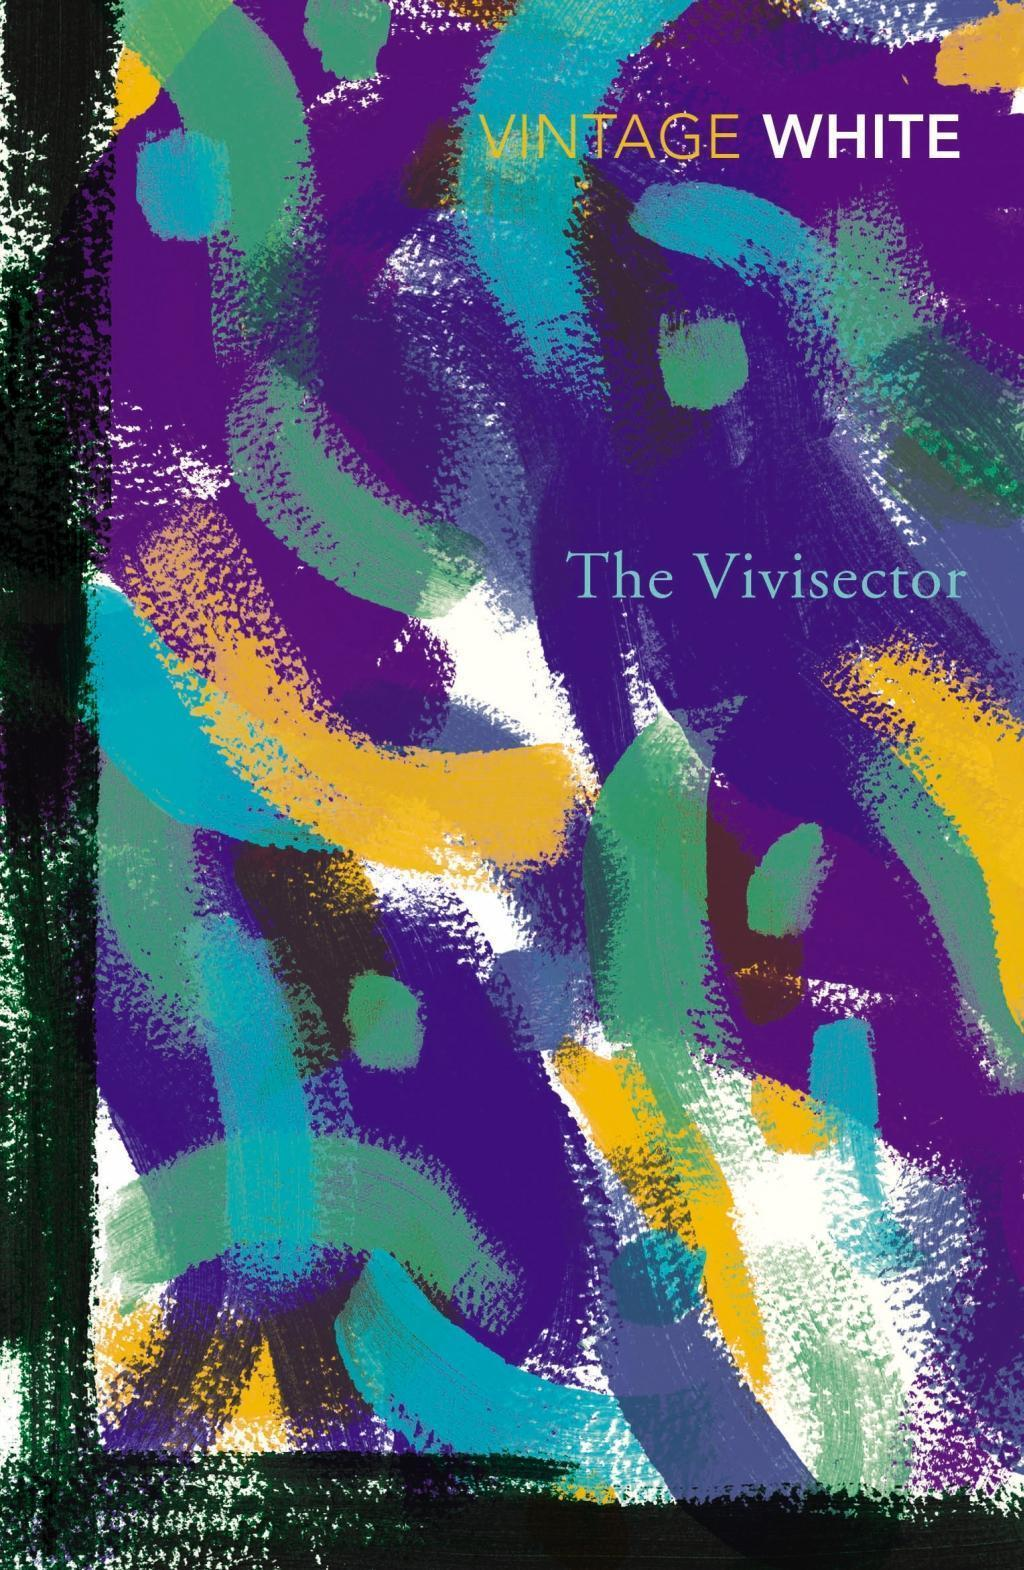 The Vivisector